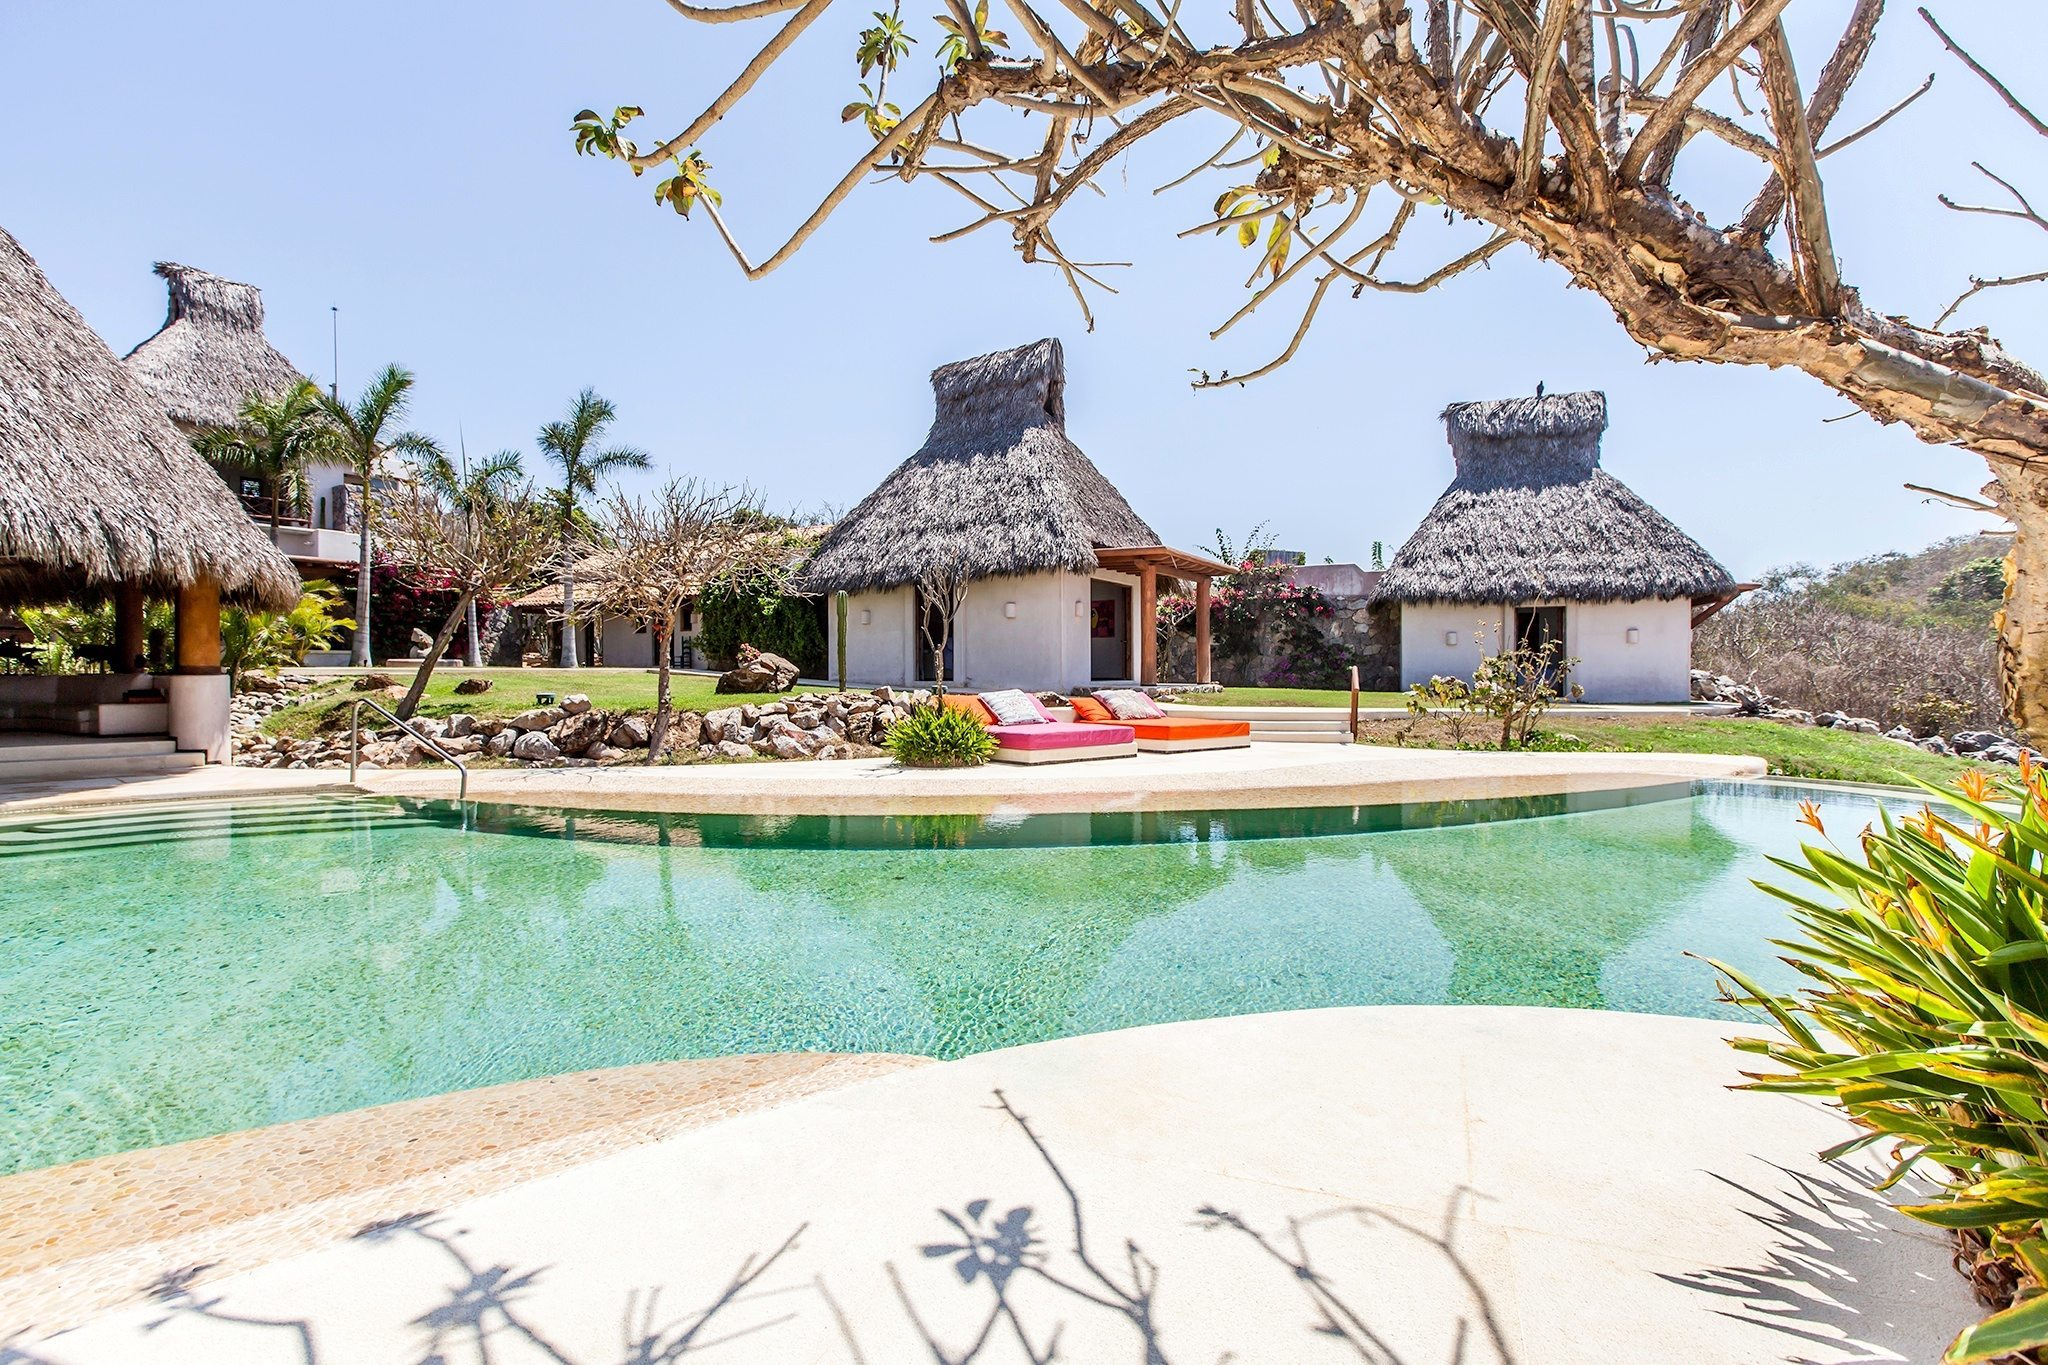 Poolside Beds Suites & Poolside Beds Suites | CASA EN LAS ROCAS